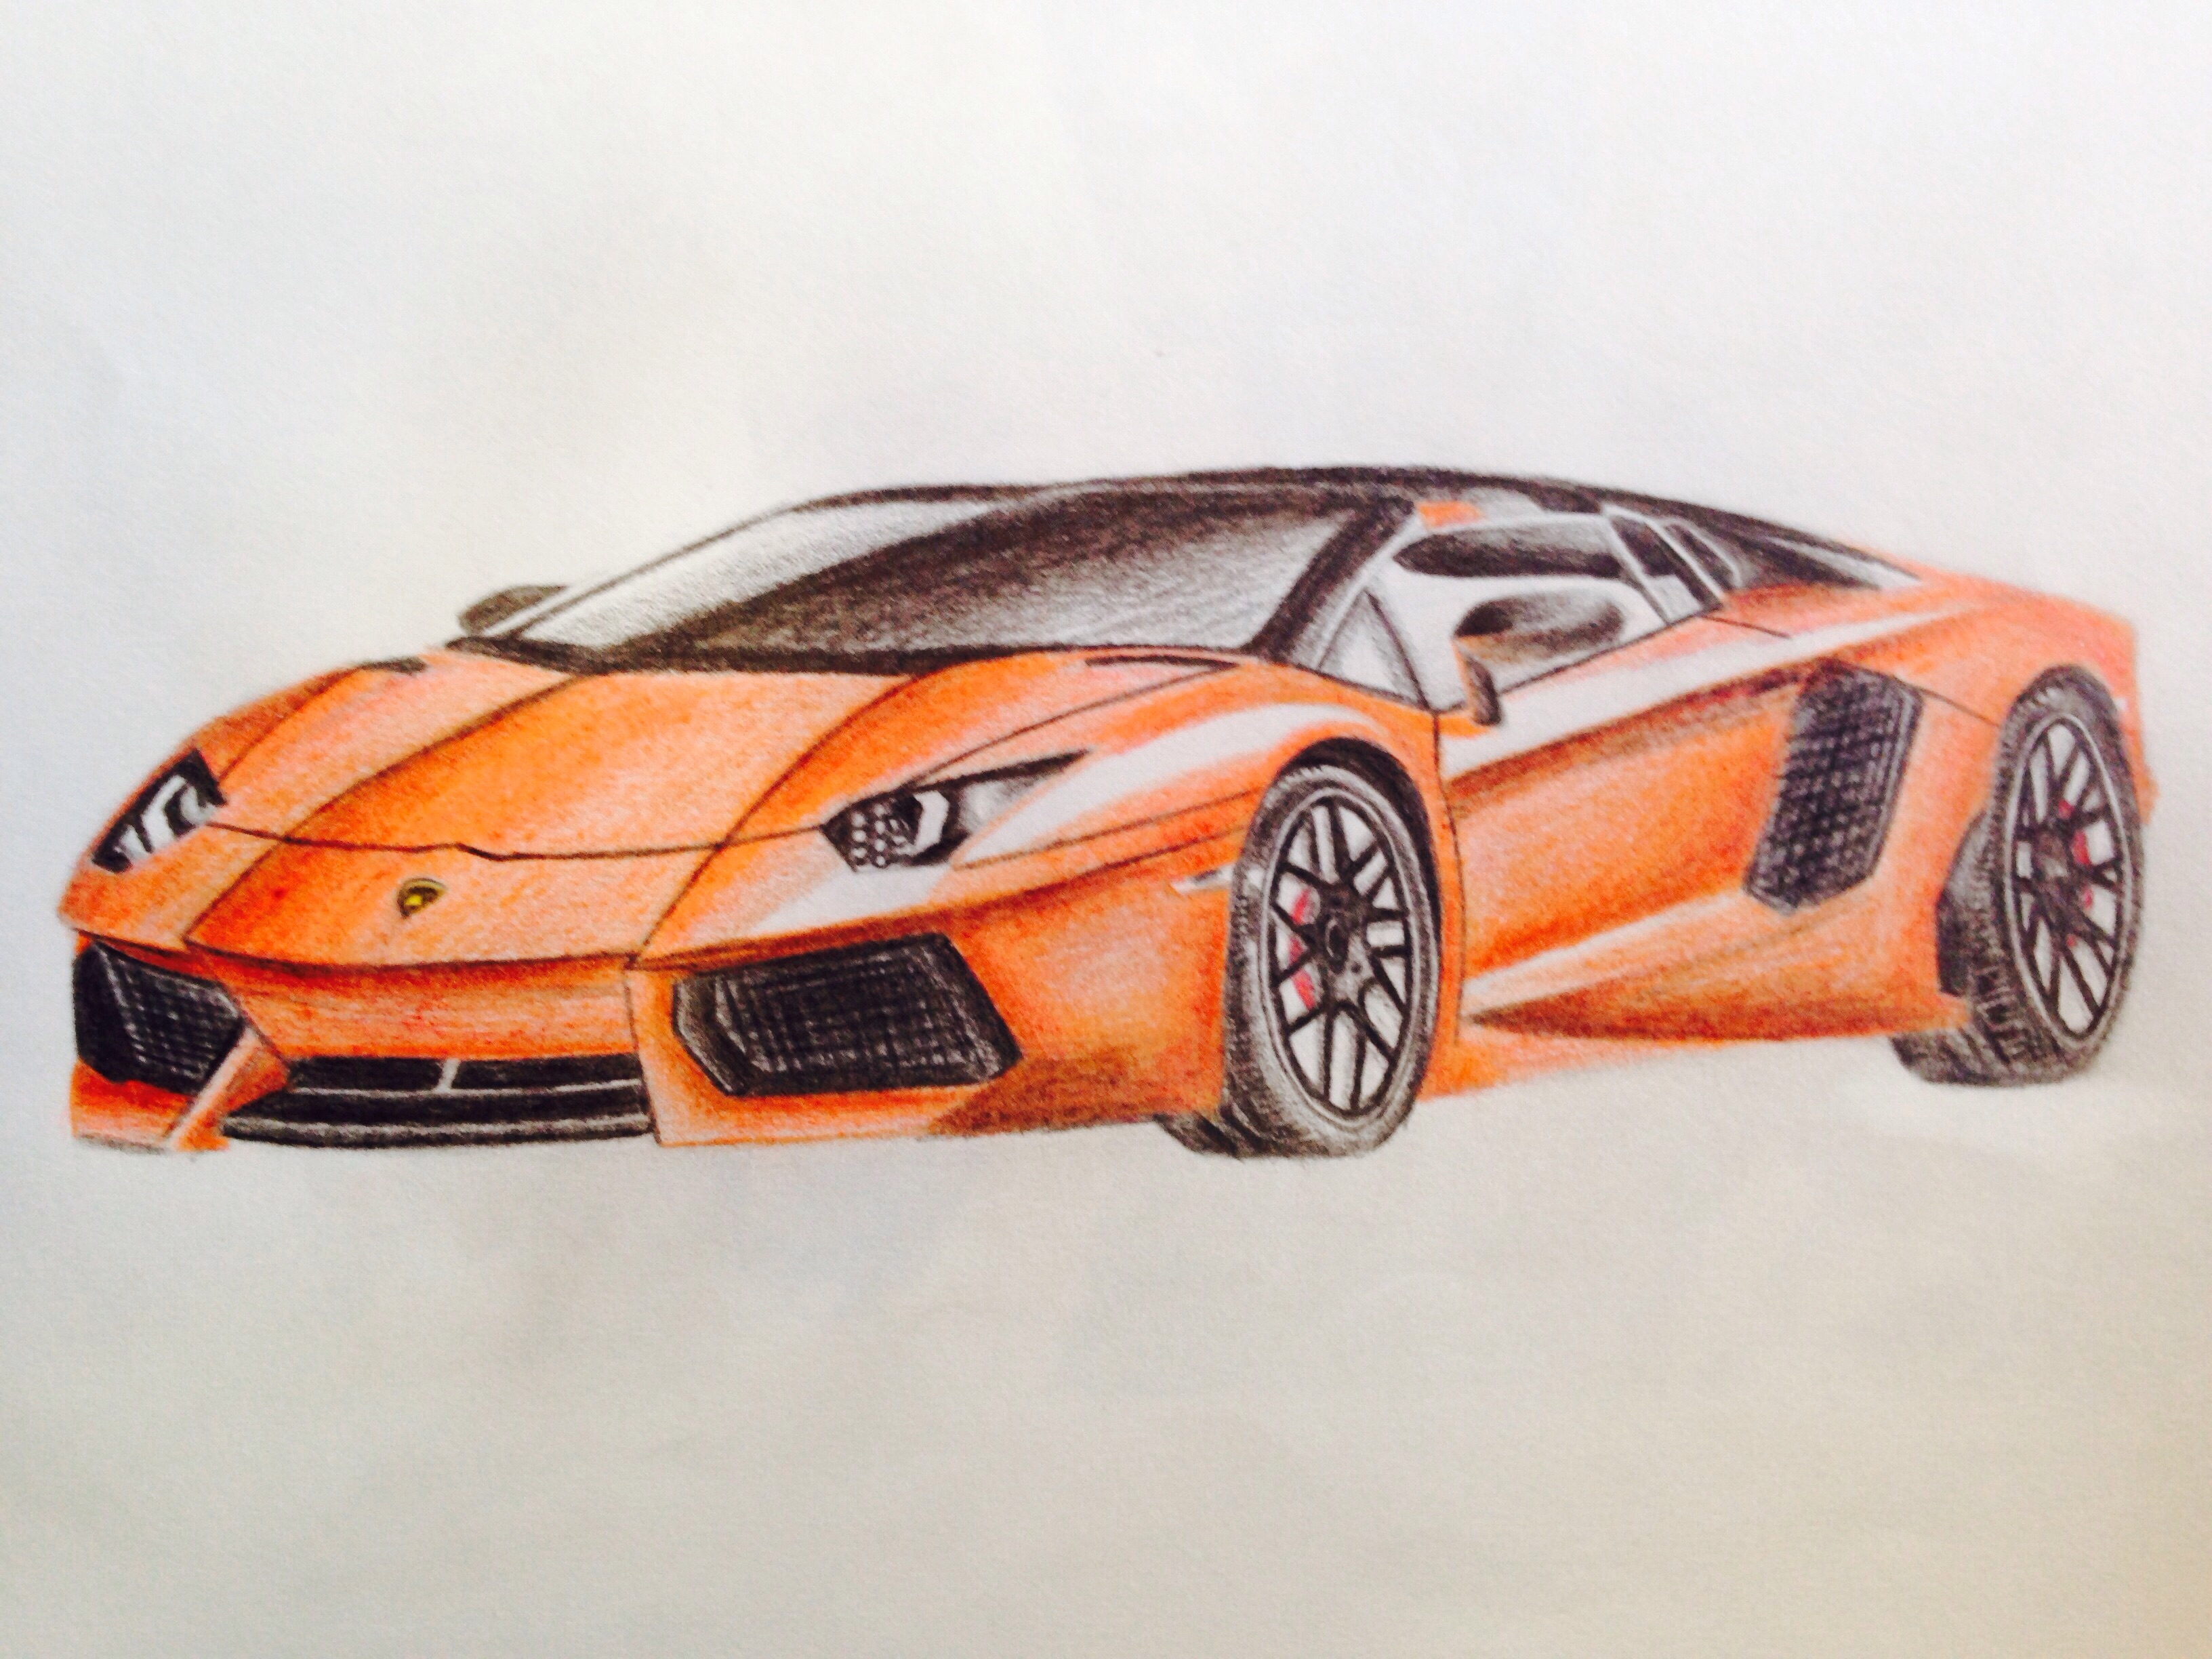 Lamborghini Car Pencil Sketch